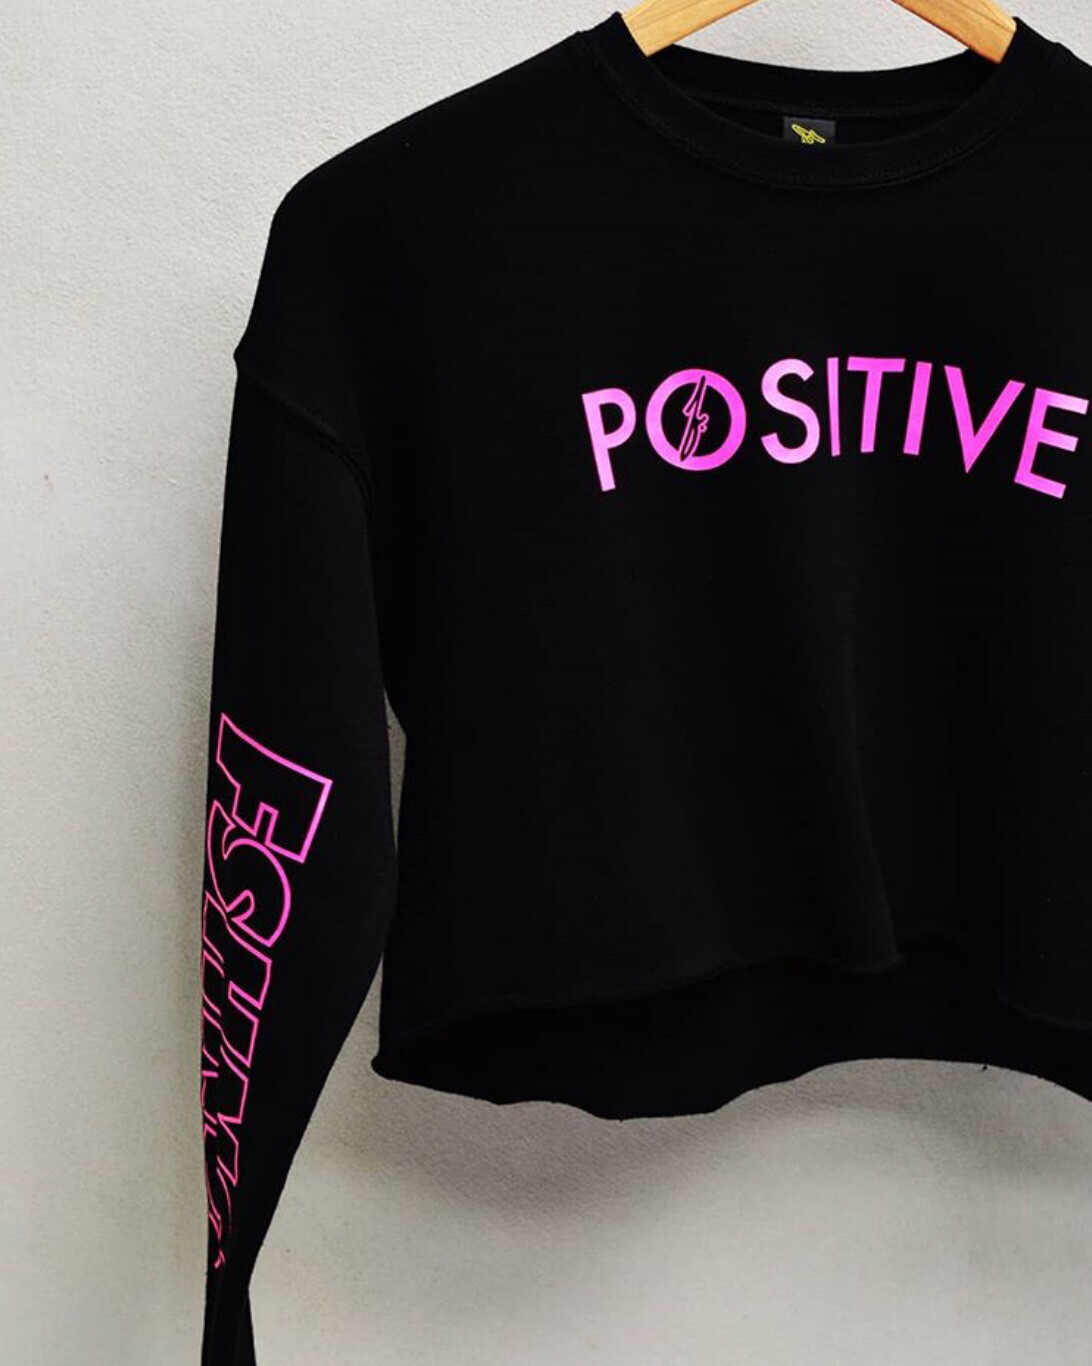 FSHNS - Womens Positive Long Sleeve Crop Top